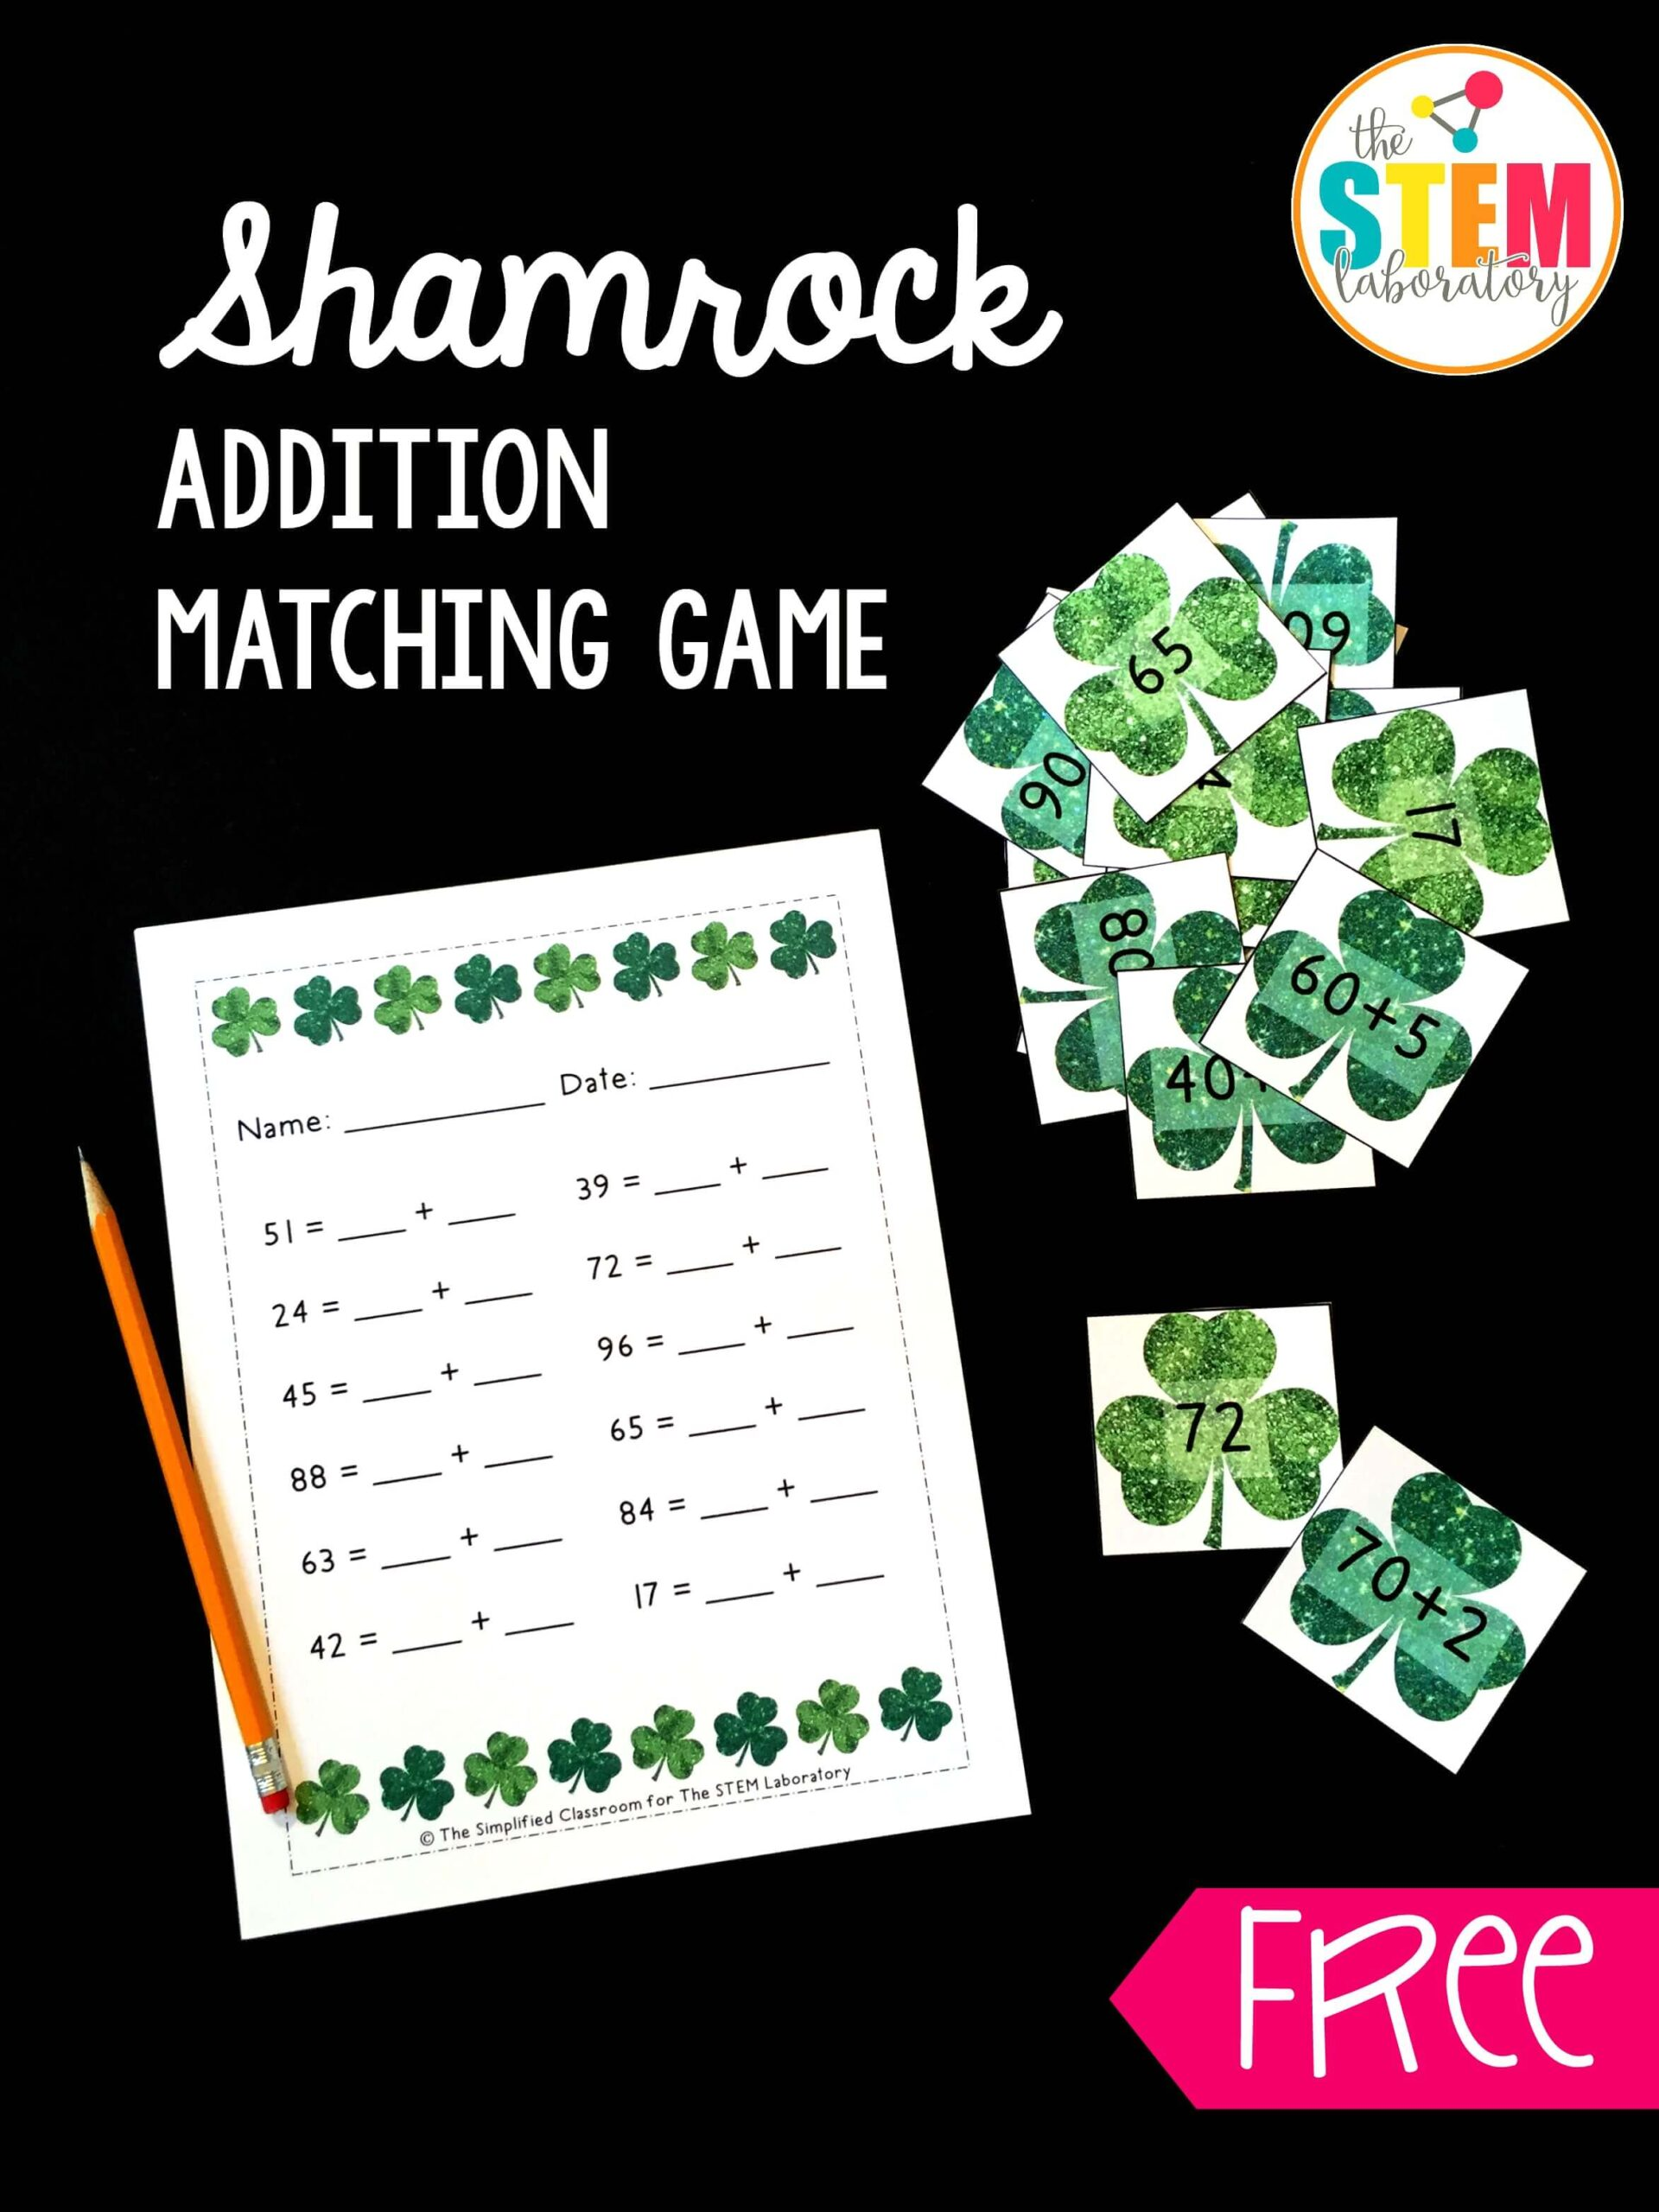 Shamrock Addition Game